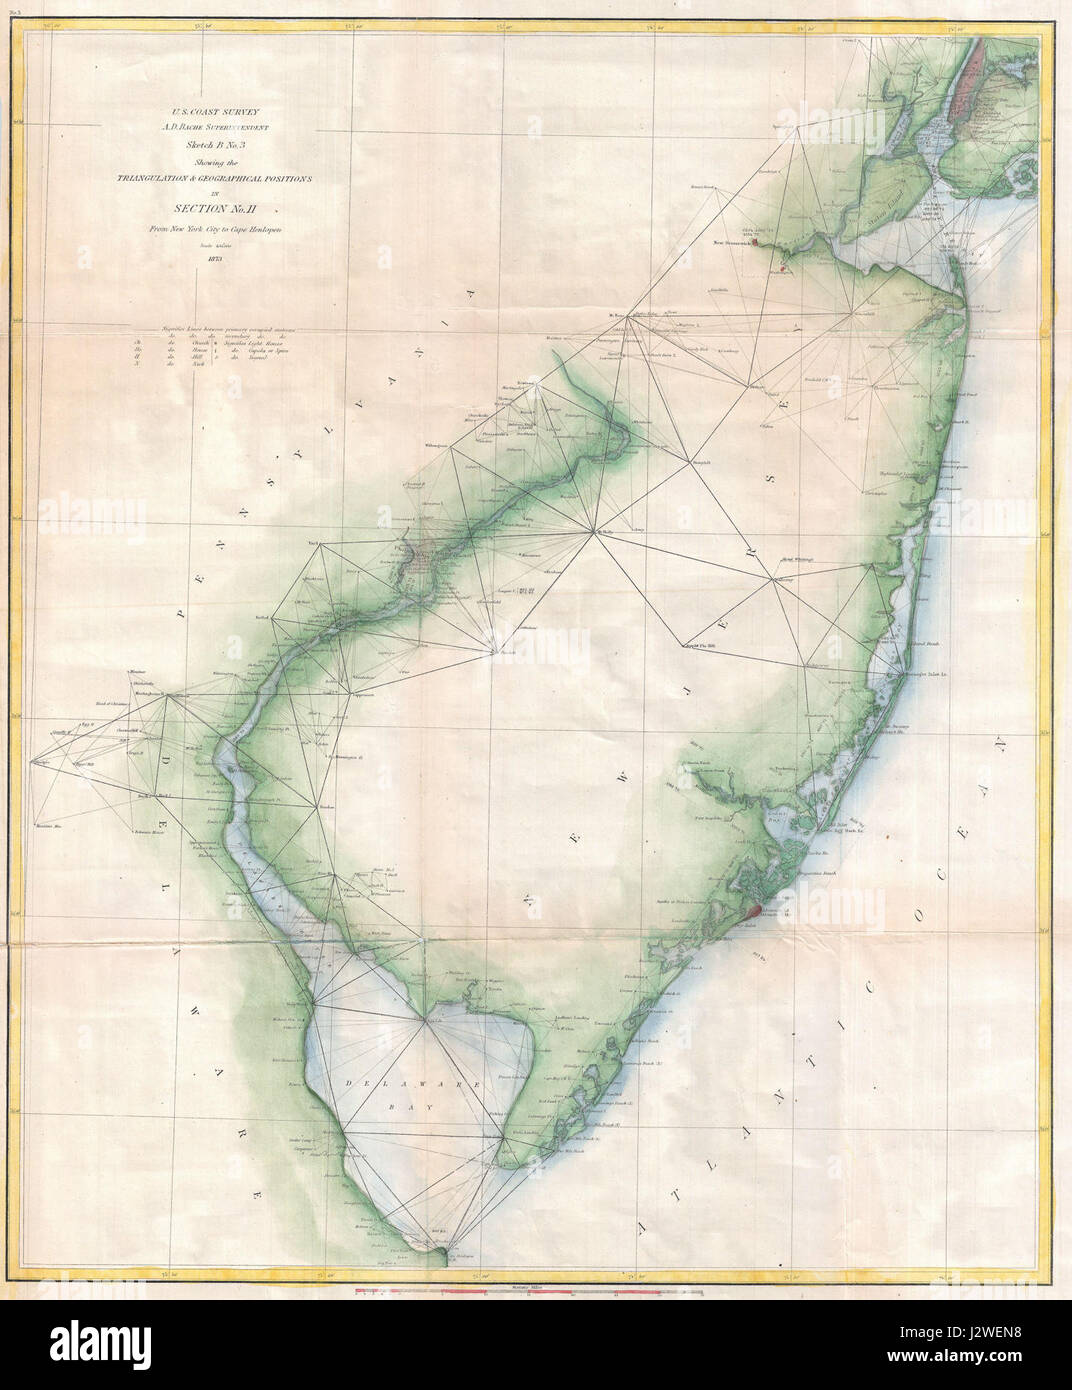 1873 U.S. Coast Survey Chart or Map of New Jersey and the Delaware Bay - Geographicus - NewJersey-uscs-1873 - Stock Image